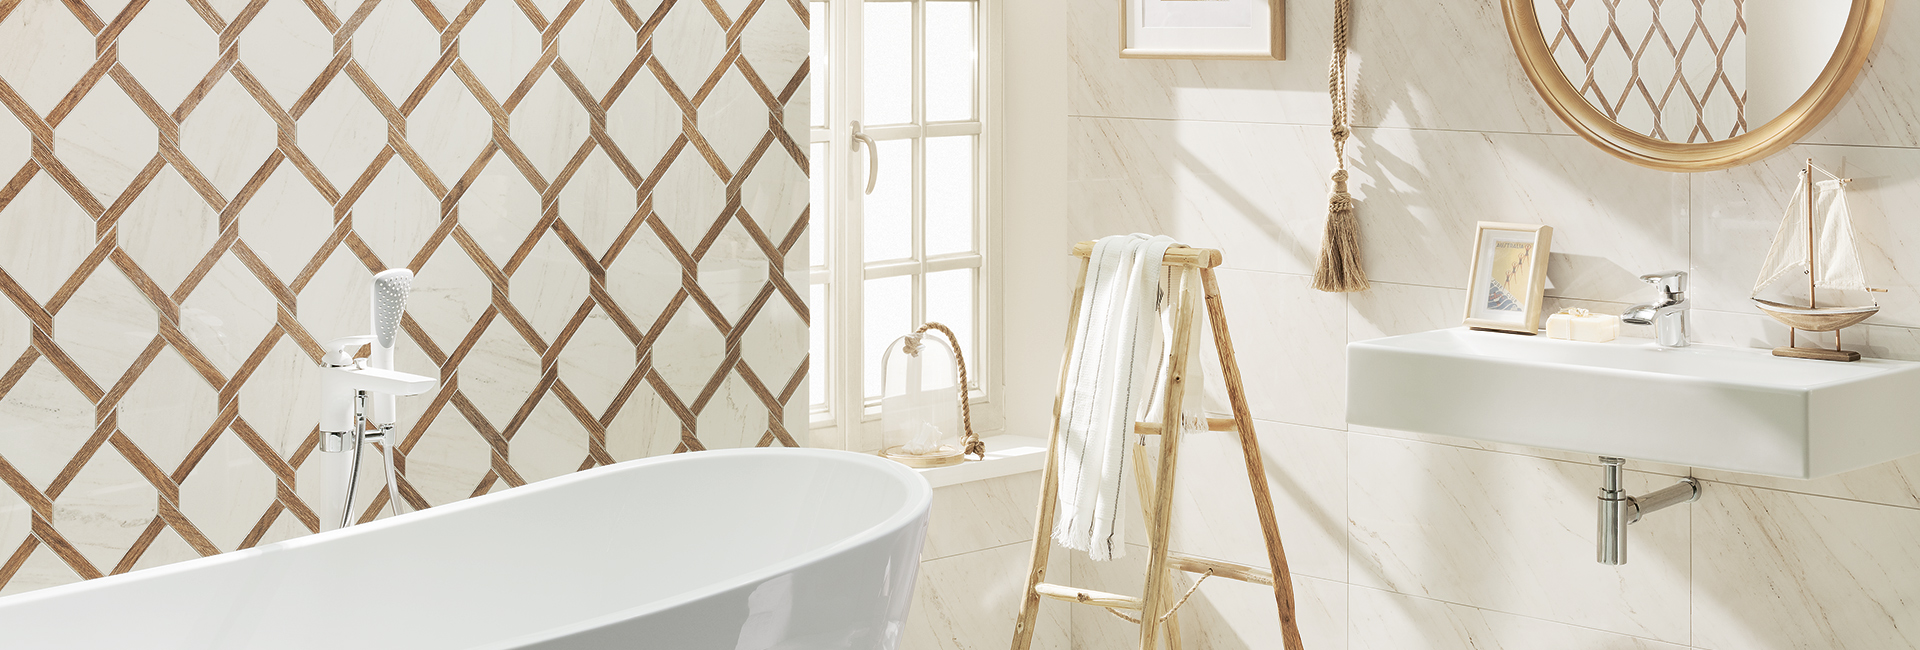 Ceramic tile and sanitary ware